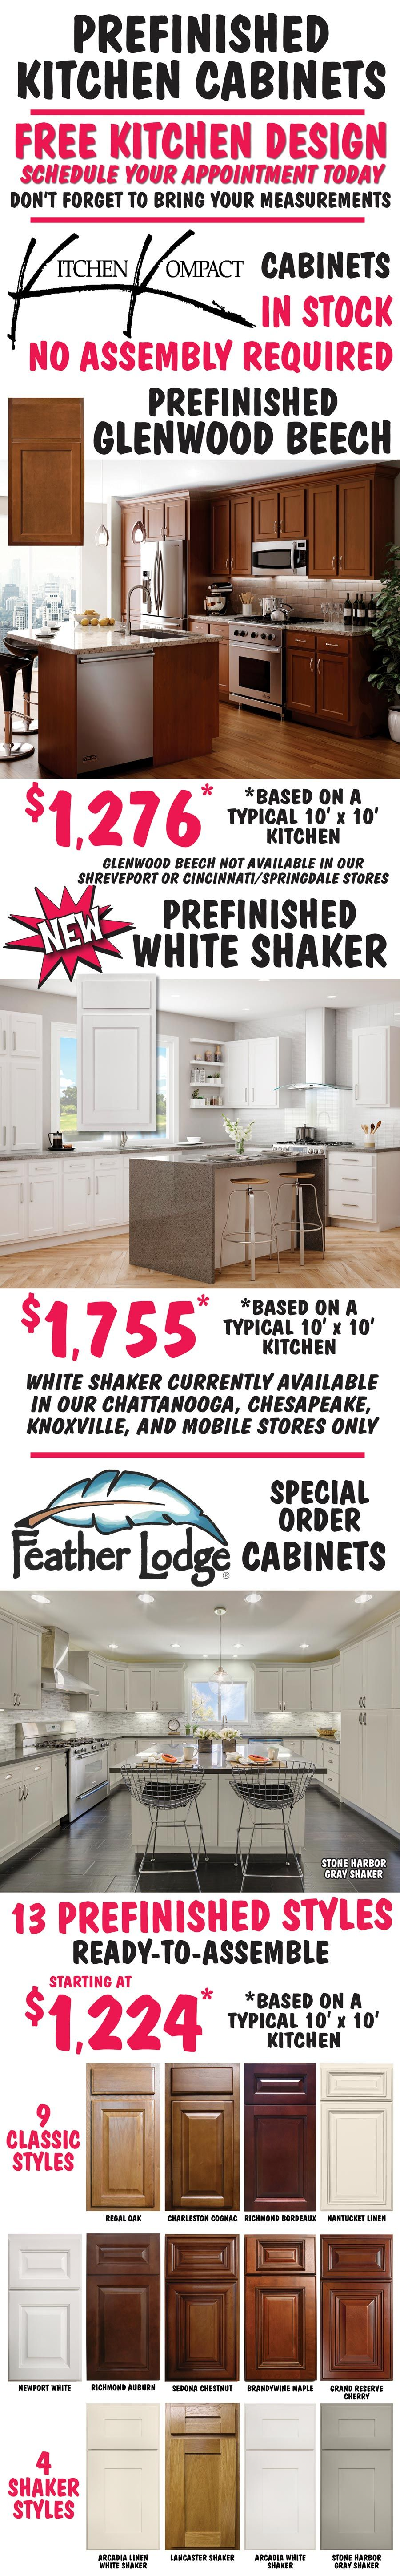 Browse Our Great Selection Of Kitchen And Bath Items At Southeastern Salvage Home Emporium Cincinnati In 2020 Free Kitchen Design Kitchen And Bath Kitchen Remodel